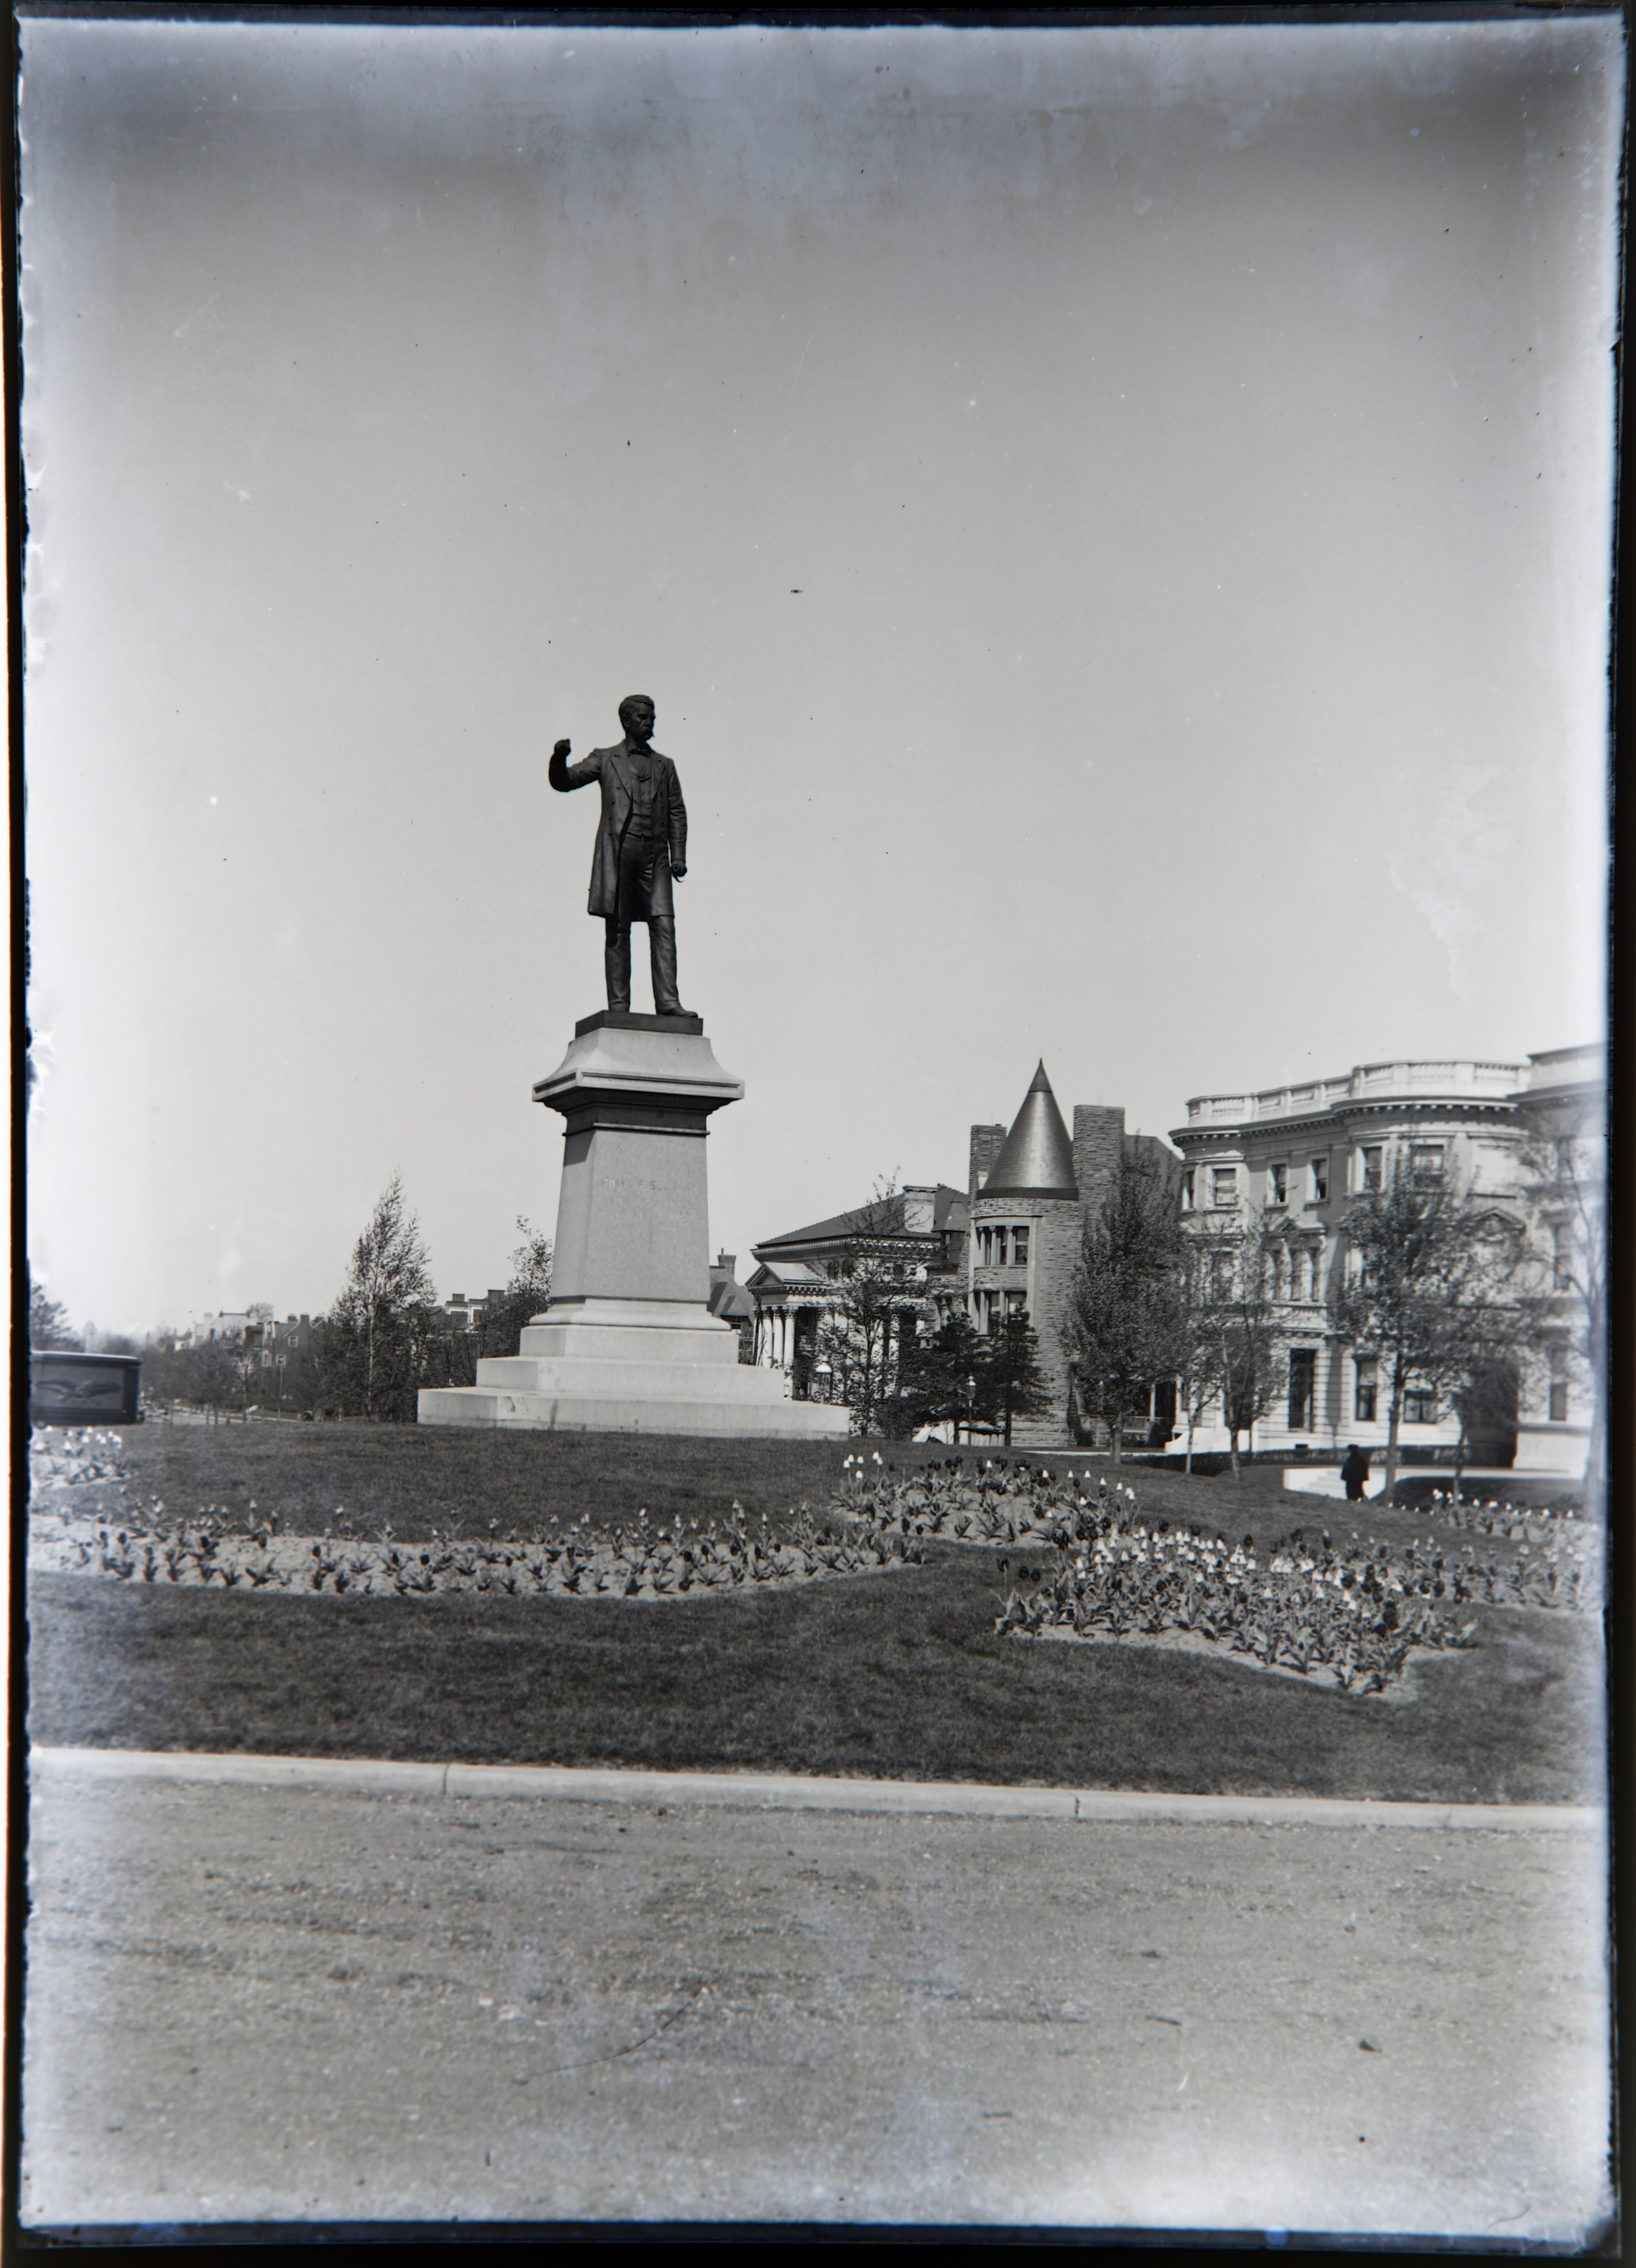 This statue still stands today, same spot at the corner of Lindell Boulevard and Kingshighway near Forest Park  in the Central West End, St. Louis.